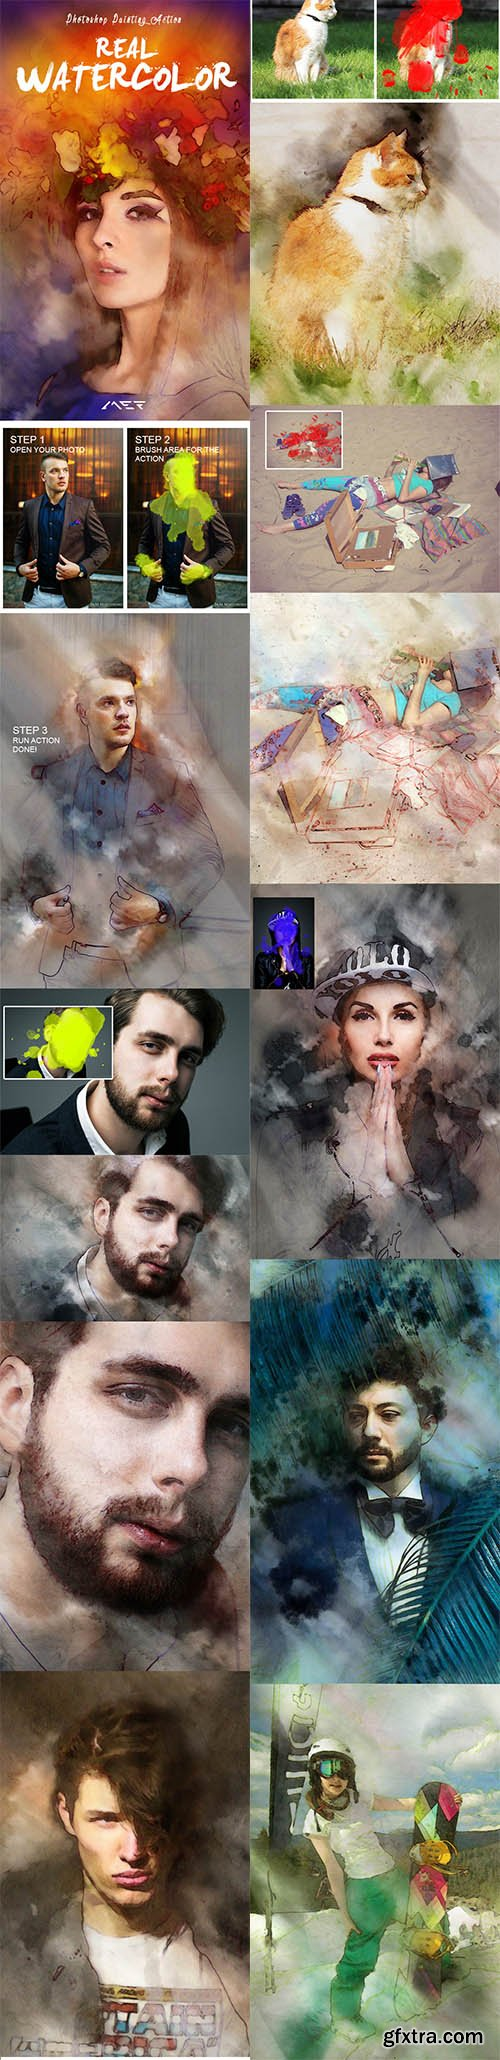 GraphicRiver Real Watercolor Painting Photoshop Action 11044807